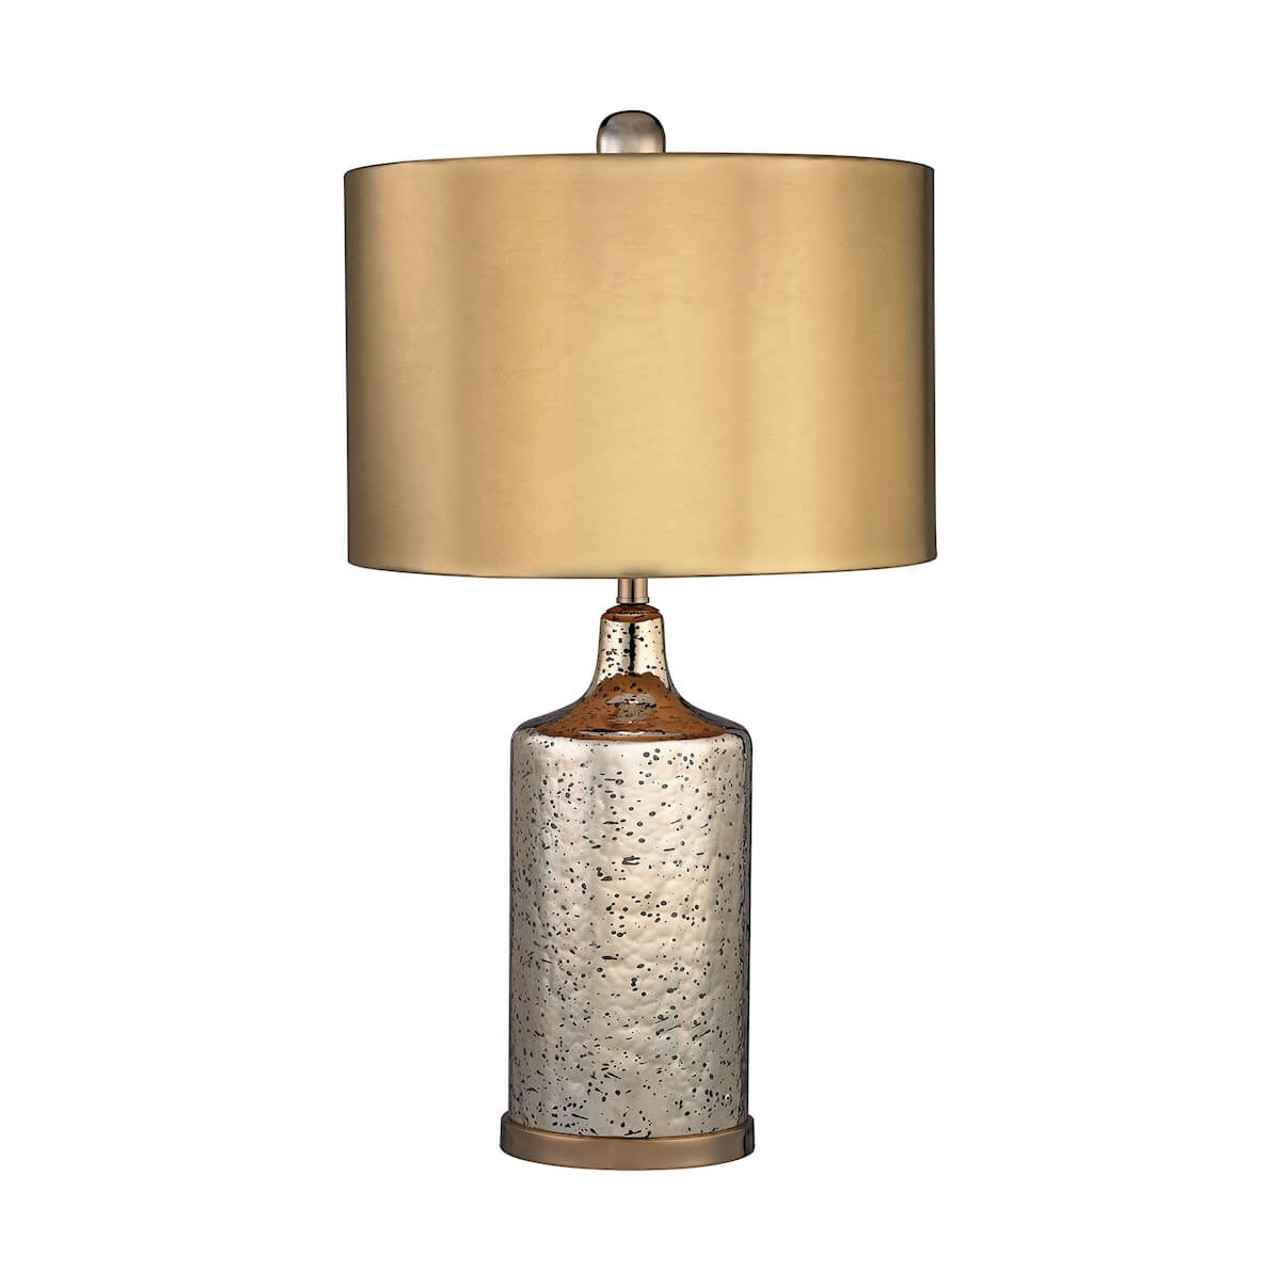 Image of: Gold Mercury Table Lamp Elk D2774 Antique Gold The Savvy Decorator